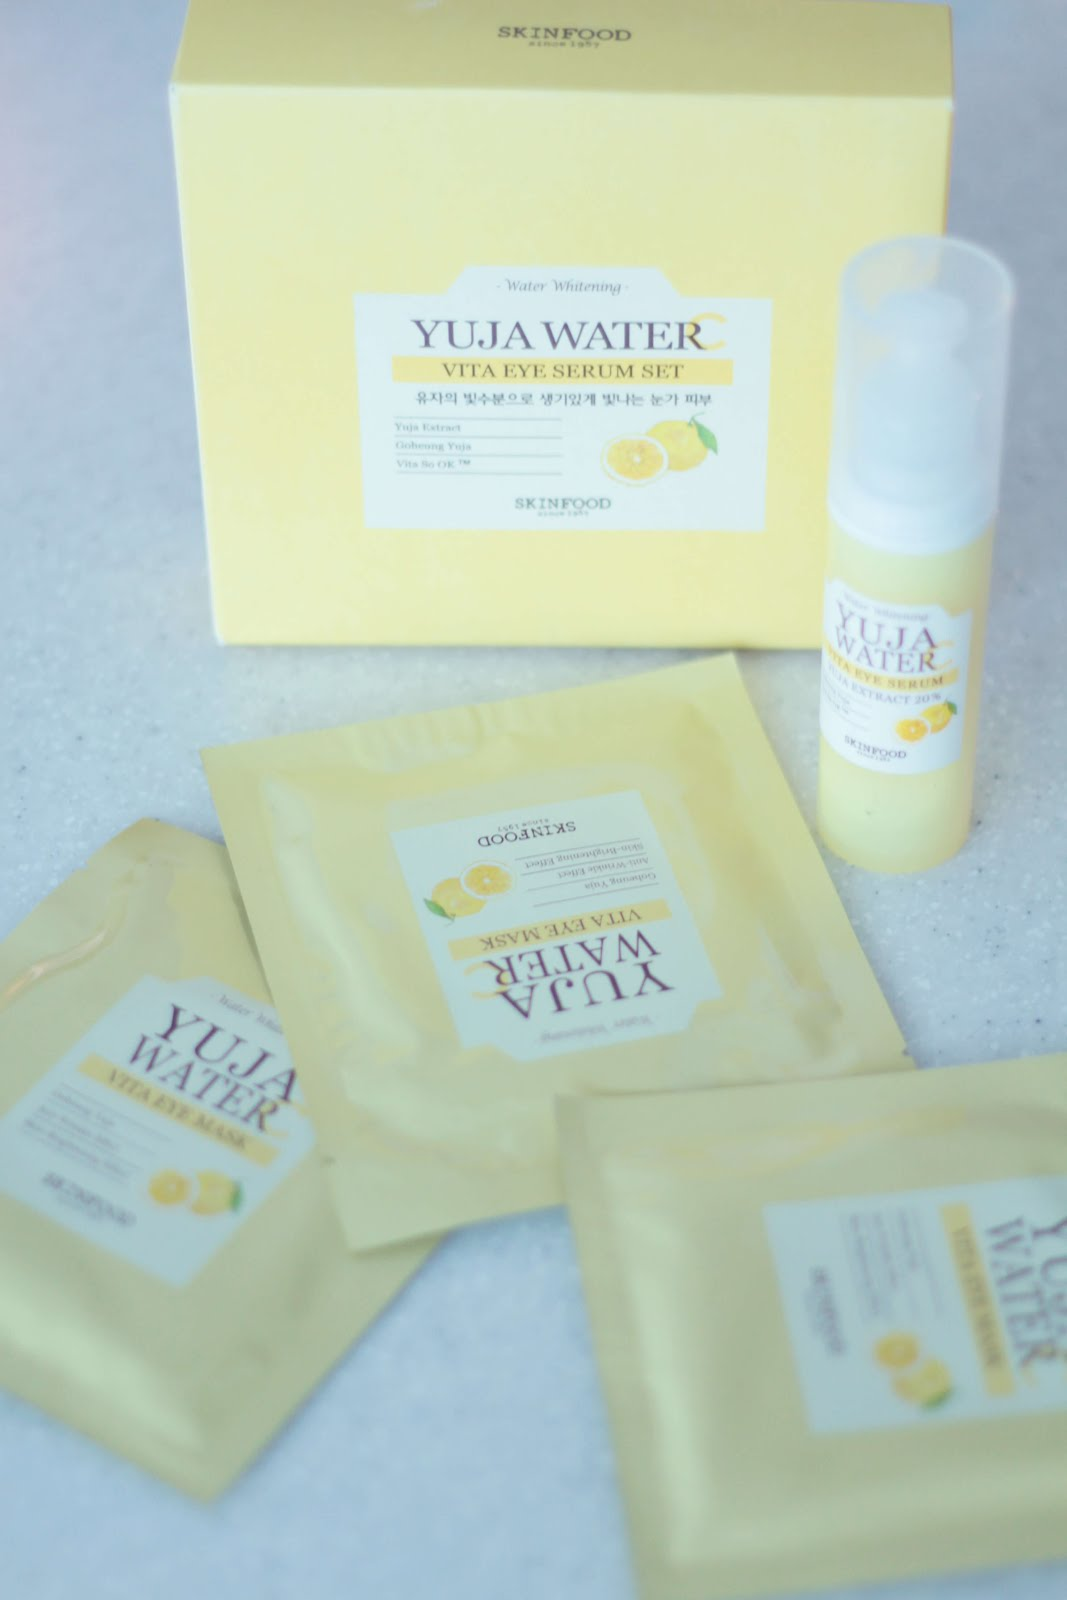 skinfood yuja water vita eye serum set